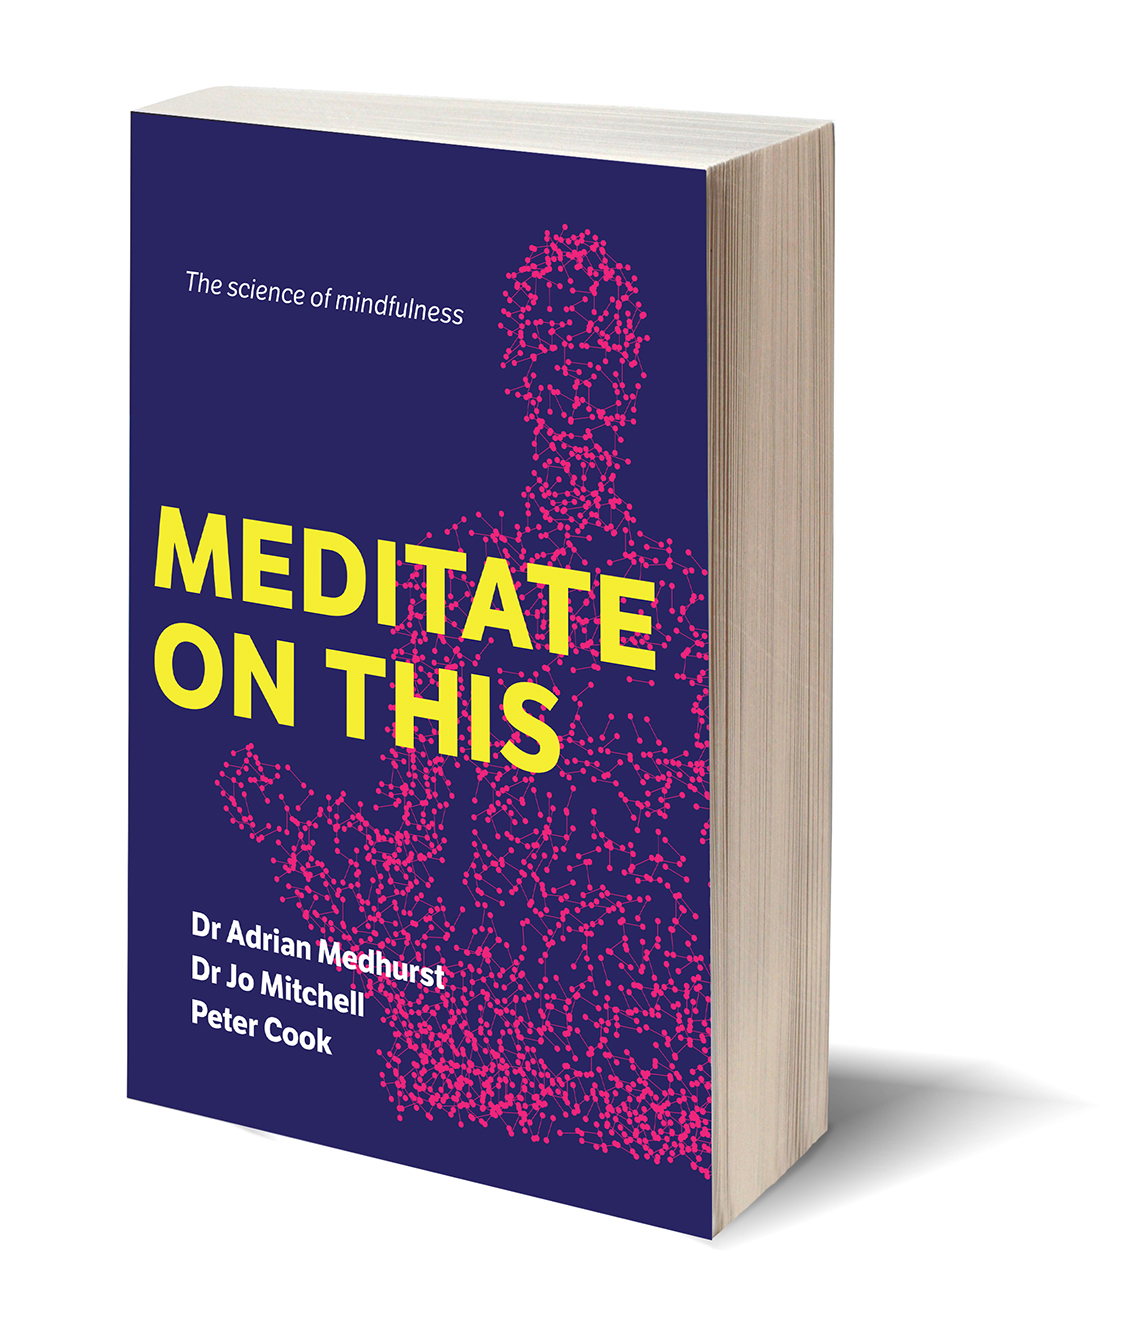 Meditate_on_this_cover_3d_small.jpg